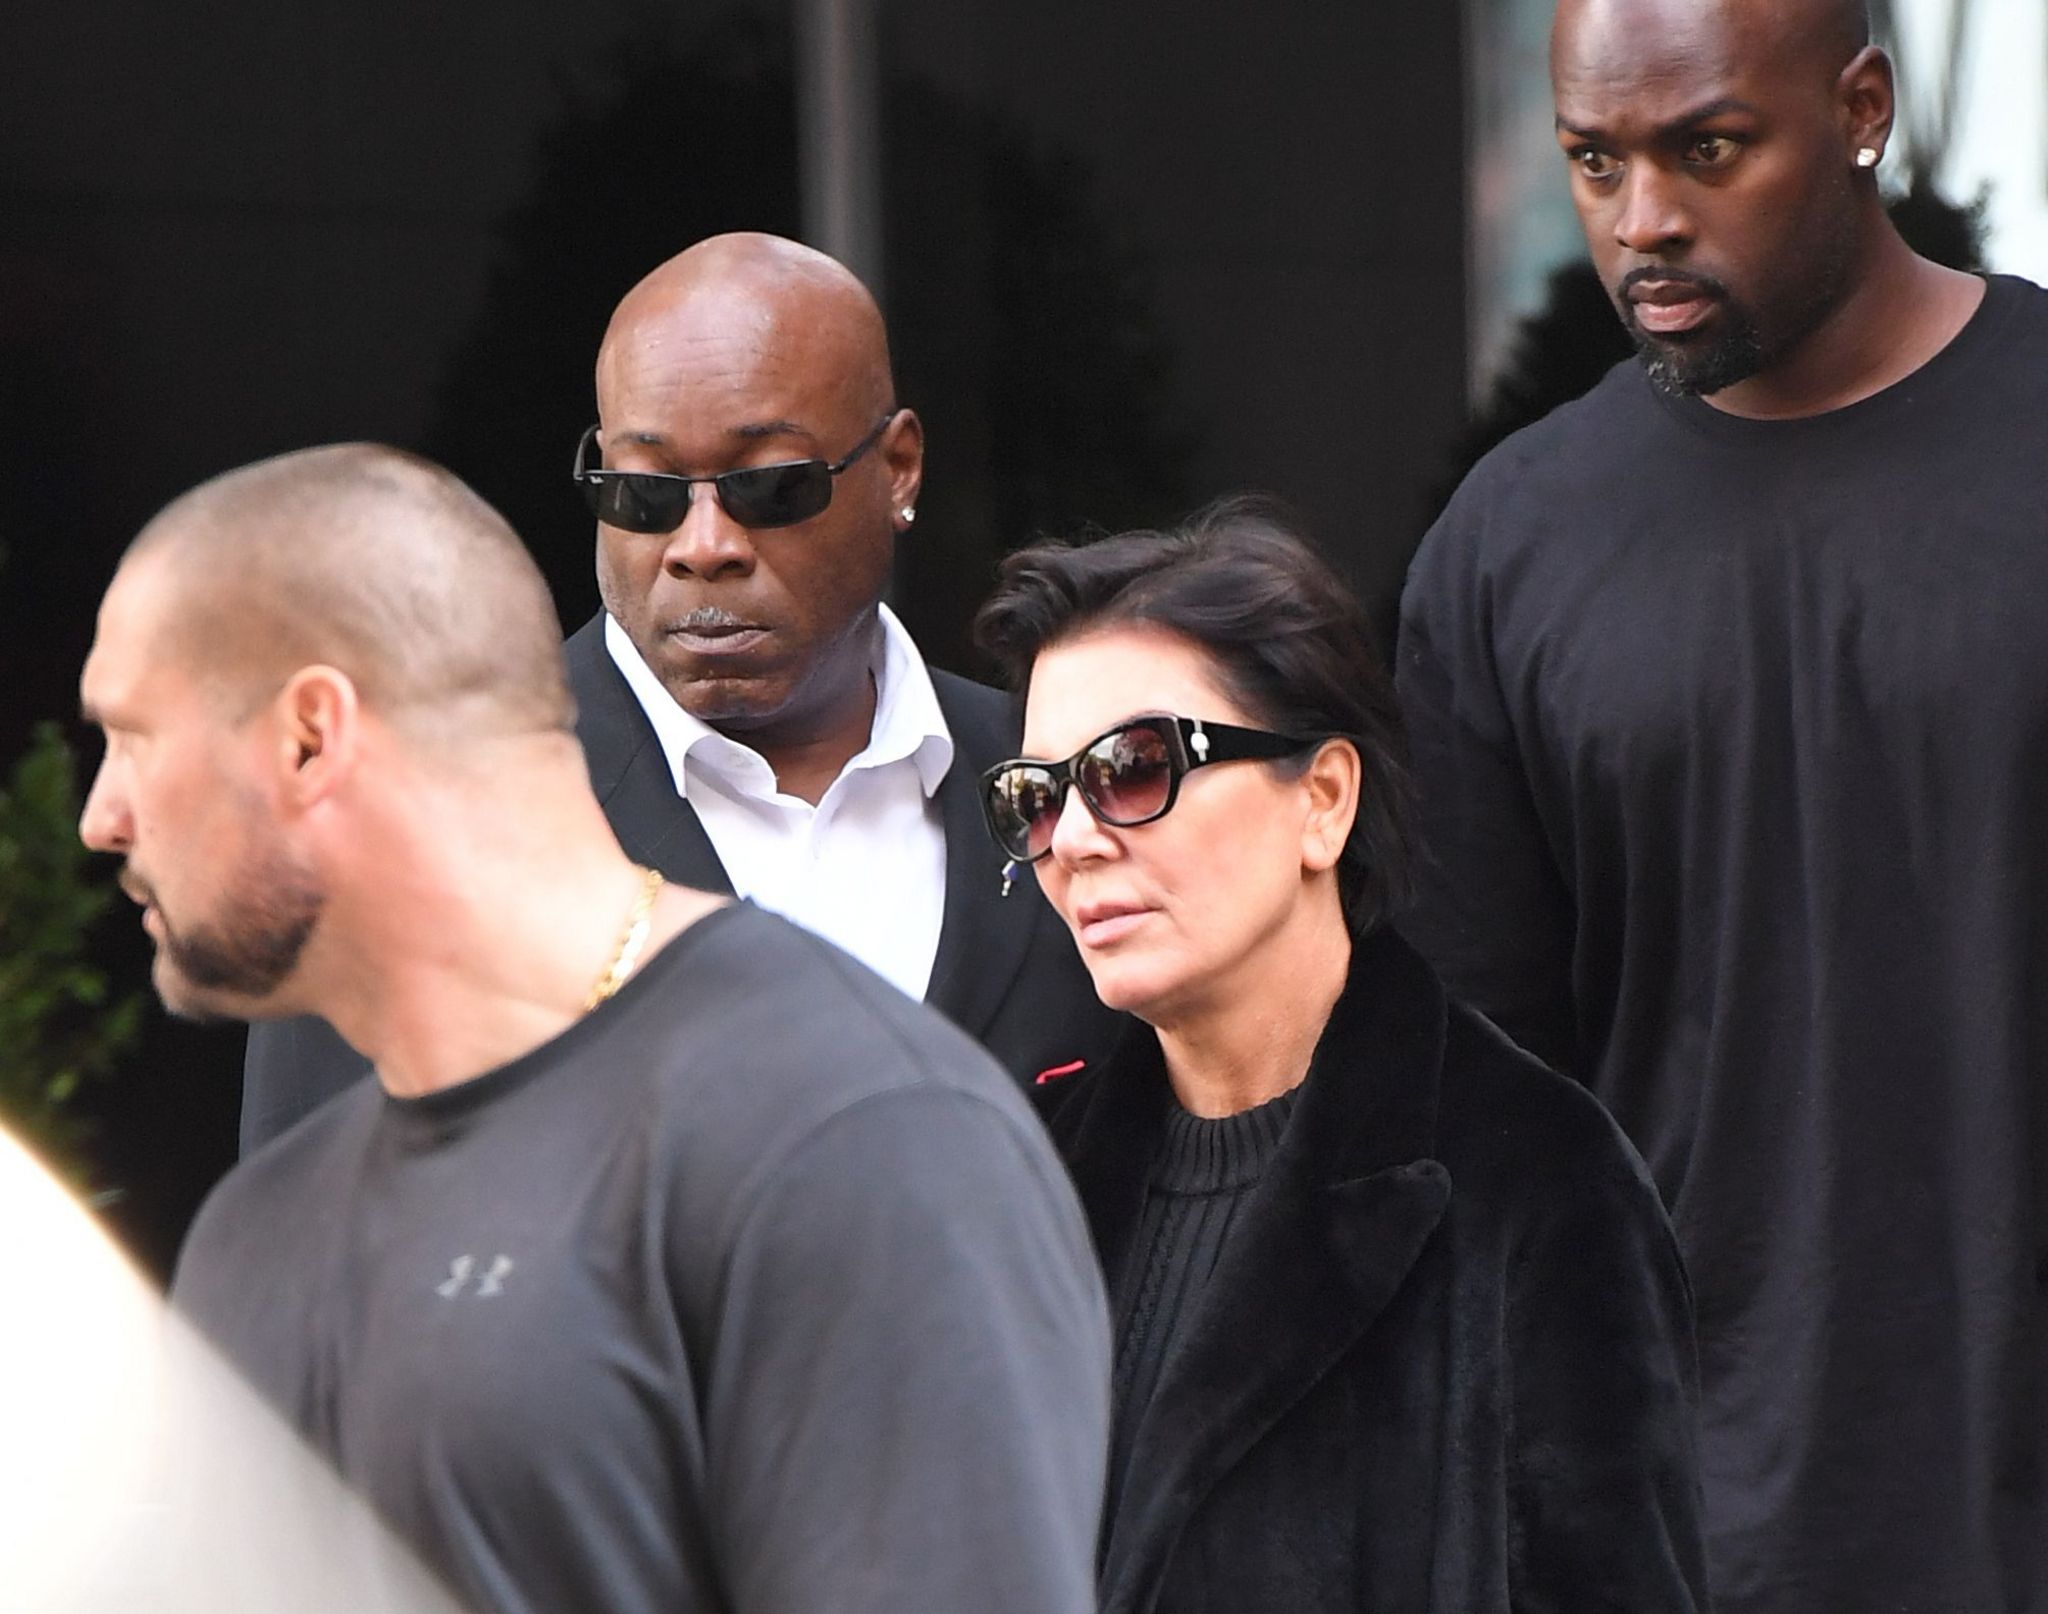 Kris Jenner after arriving in New York on Monday afternoon